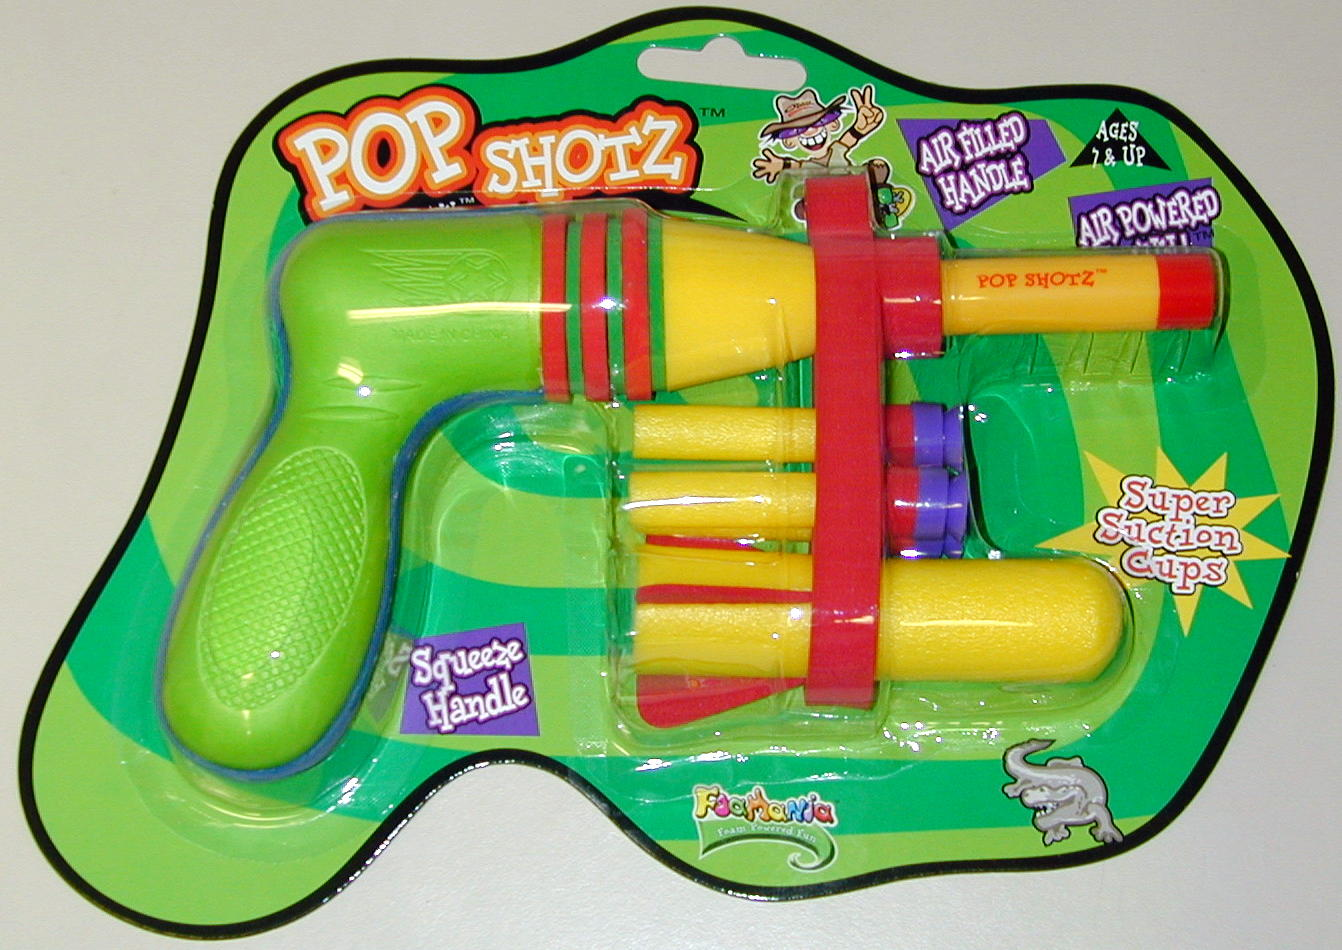 Pop Shotz Air Shooter